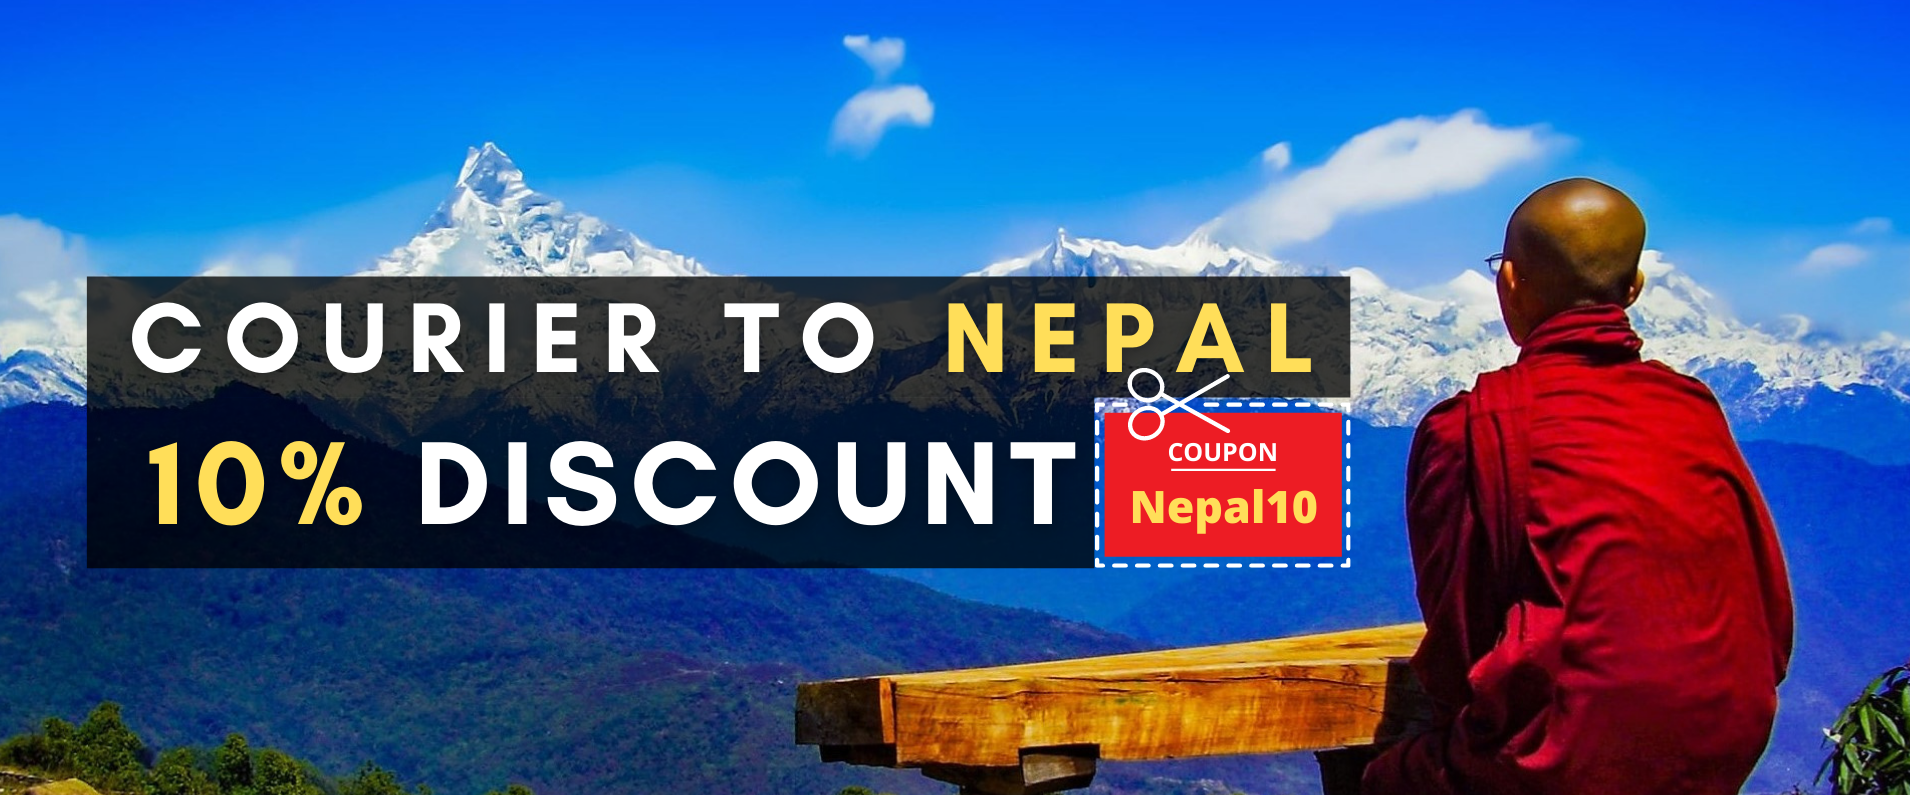 Courier To Nepal discount